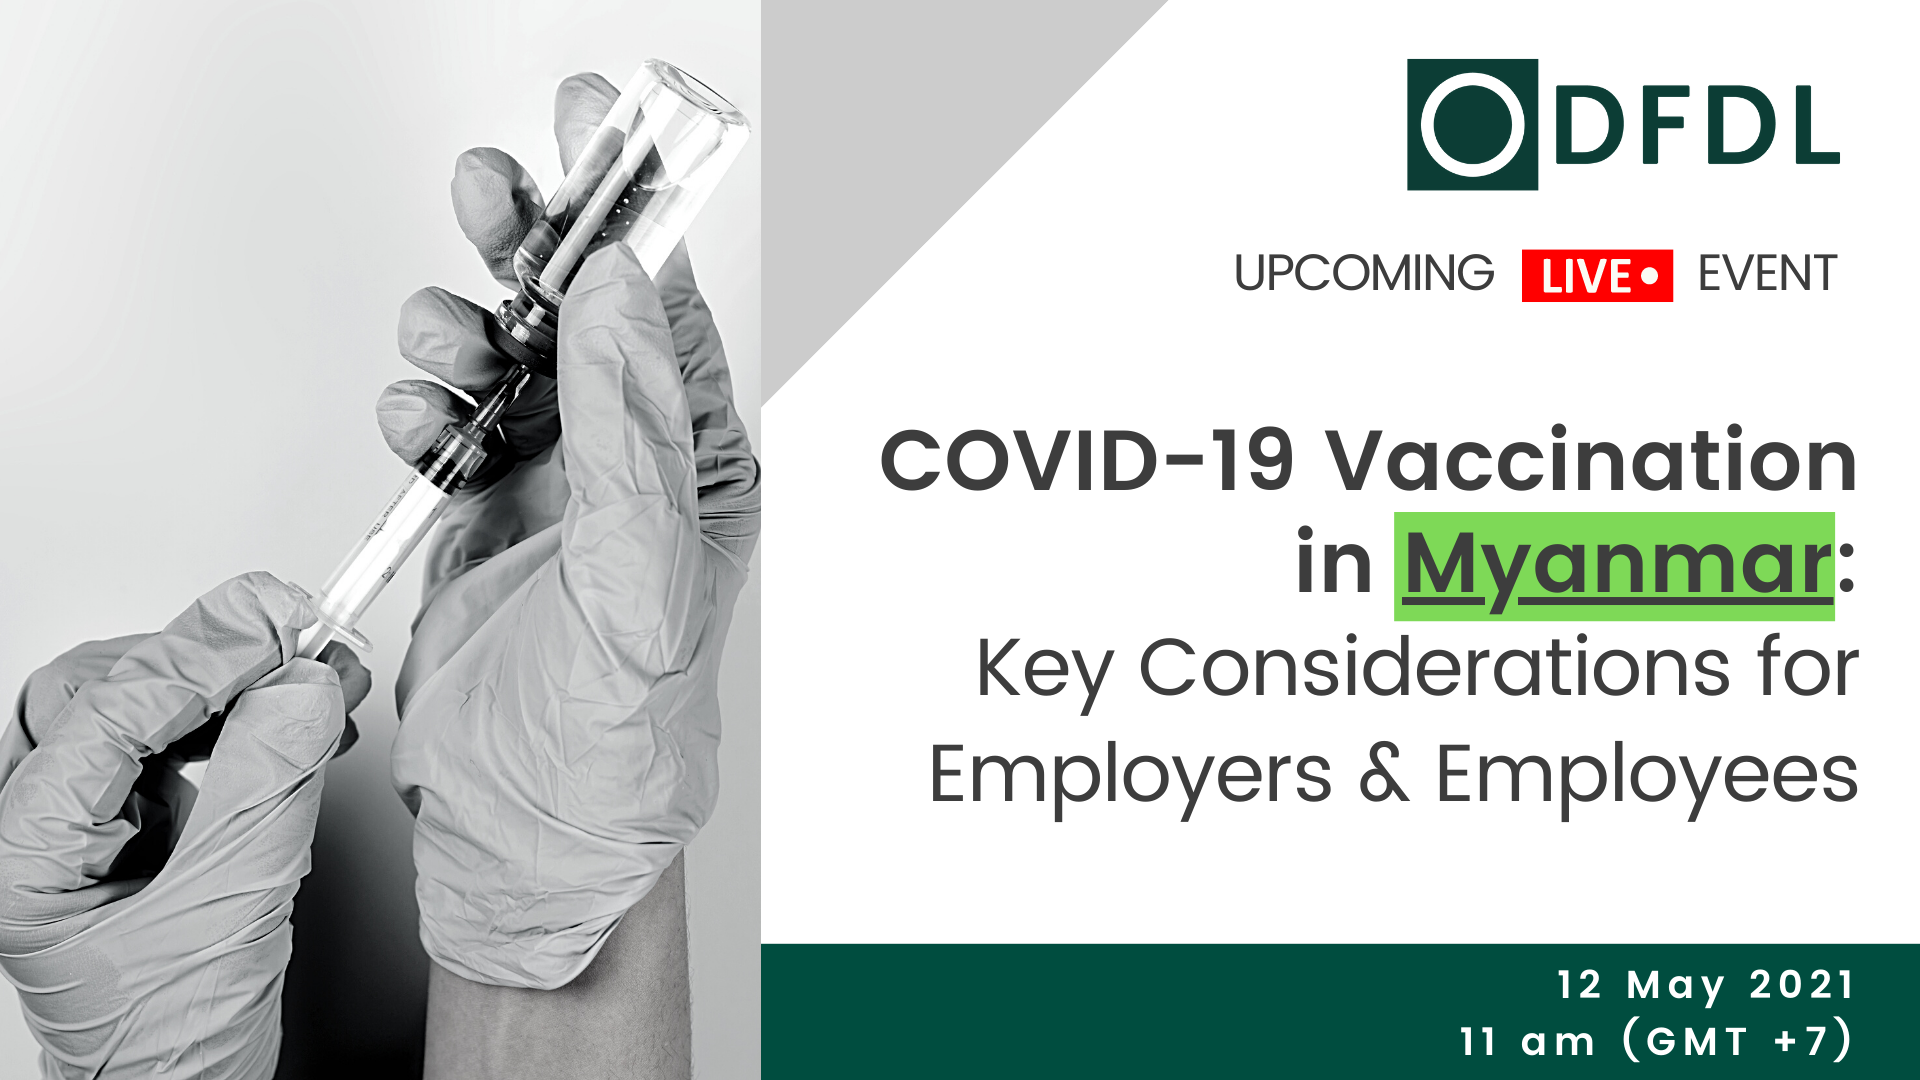 COVID-19 Vaccination in Myanmar: Key Considerations for Employers & Employees